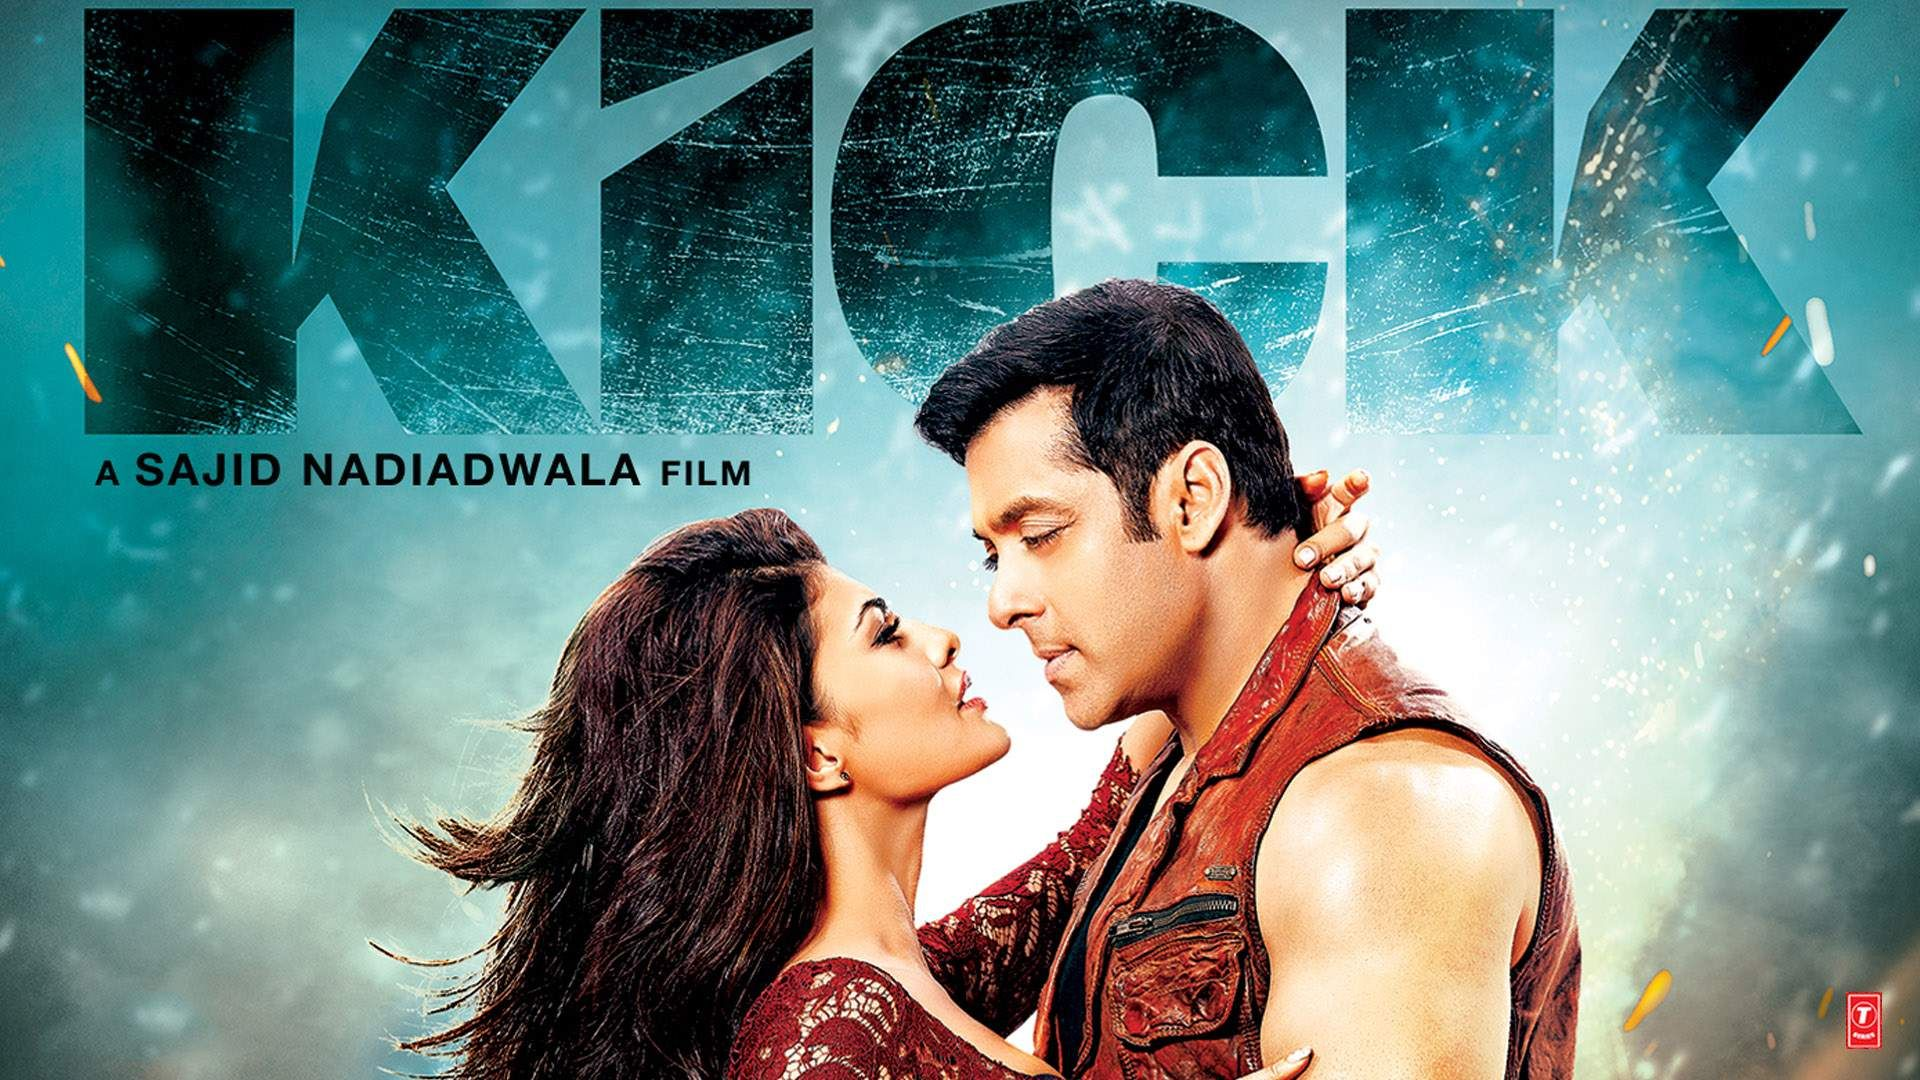 Salman Khan Jacqueline Fernandez In 2014 Bollywood Kick Movie Poster